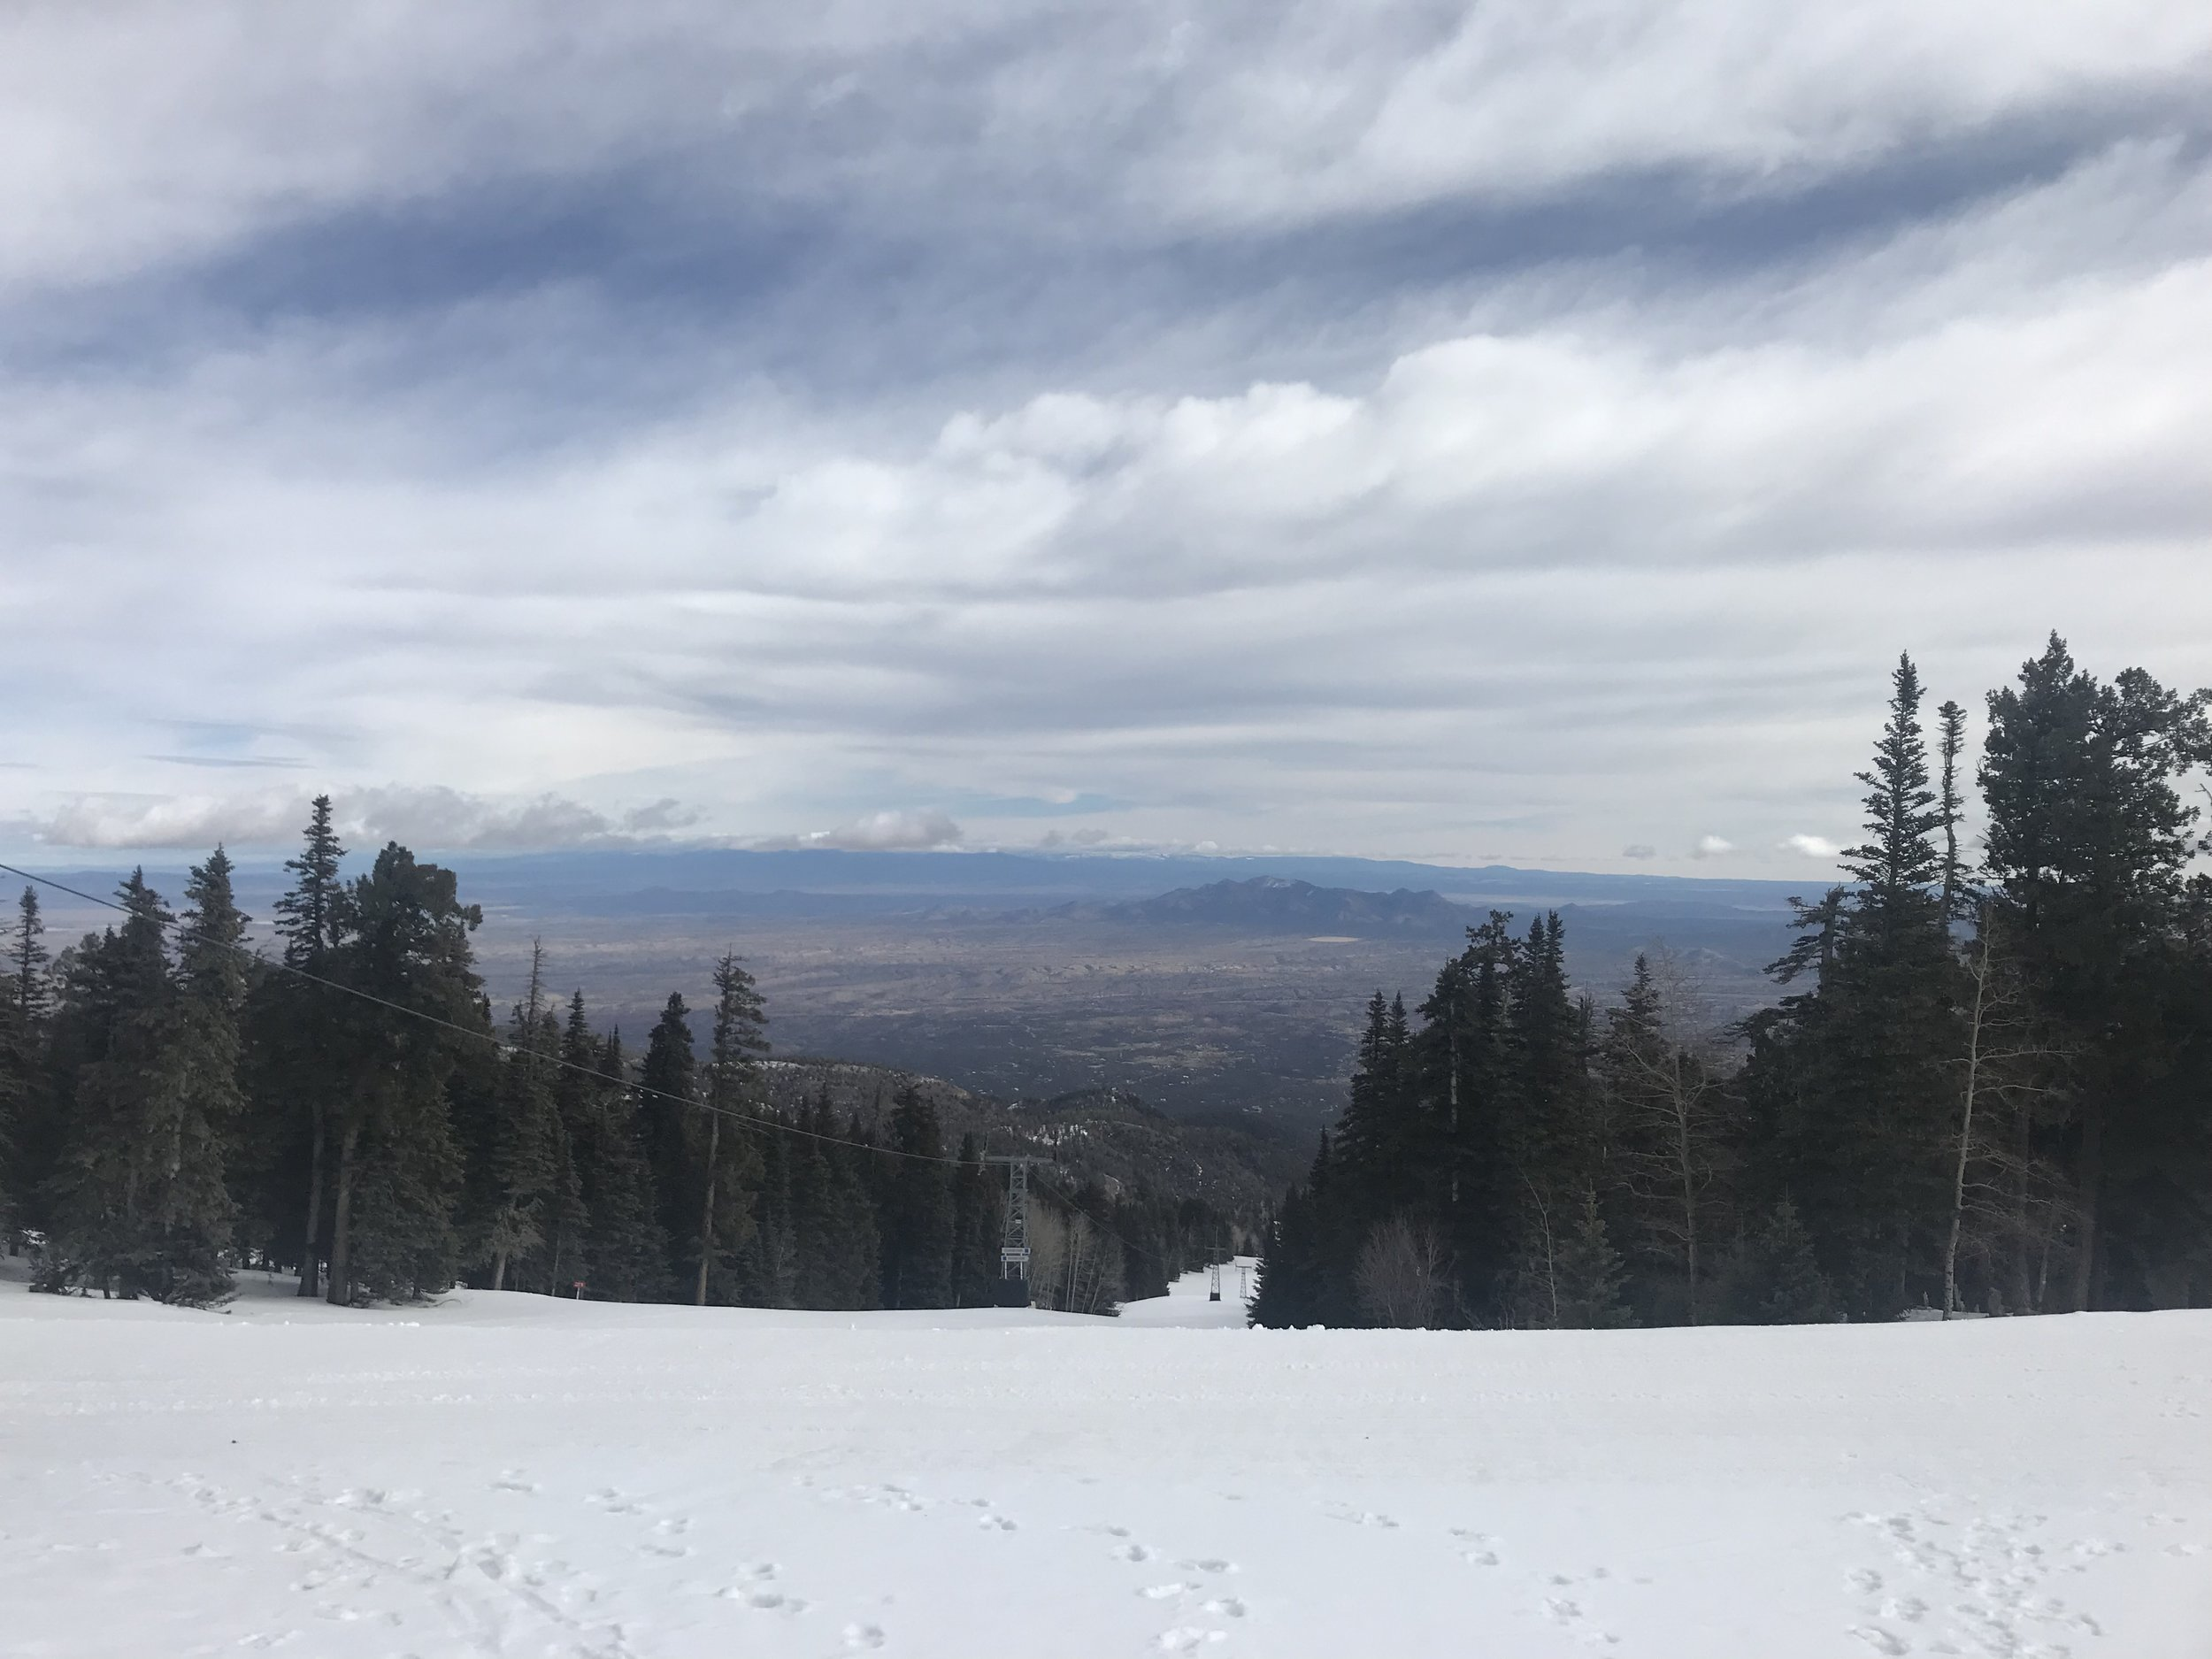 Skiing on the other side of the peak.